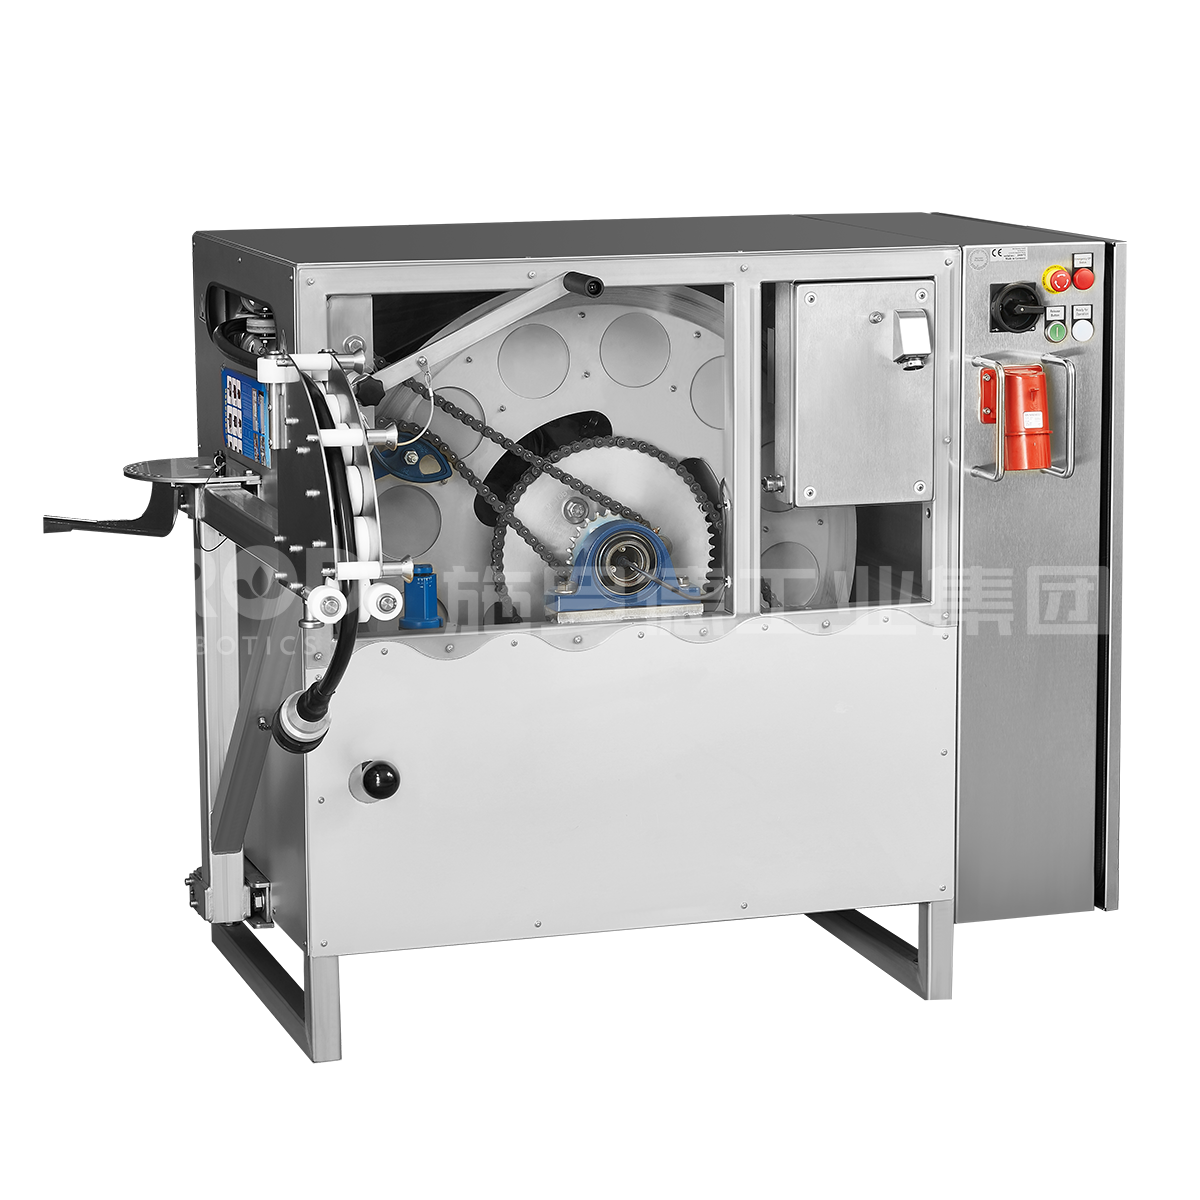 Trenchless Pipe Repair CIPP UV Curing System 7800